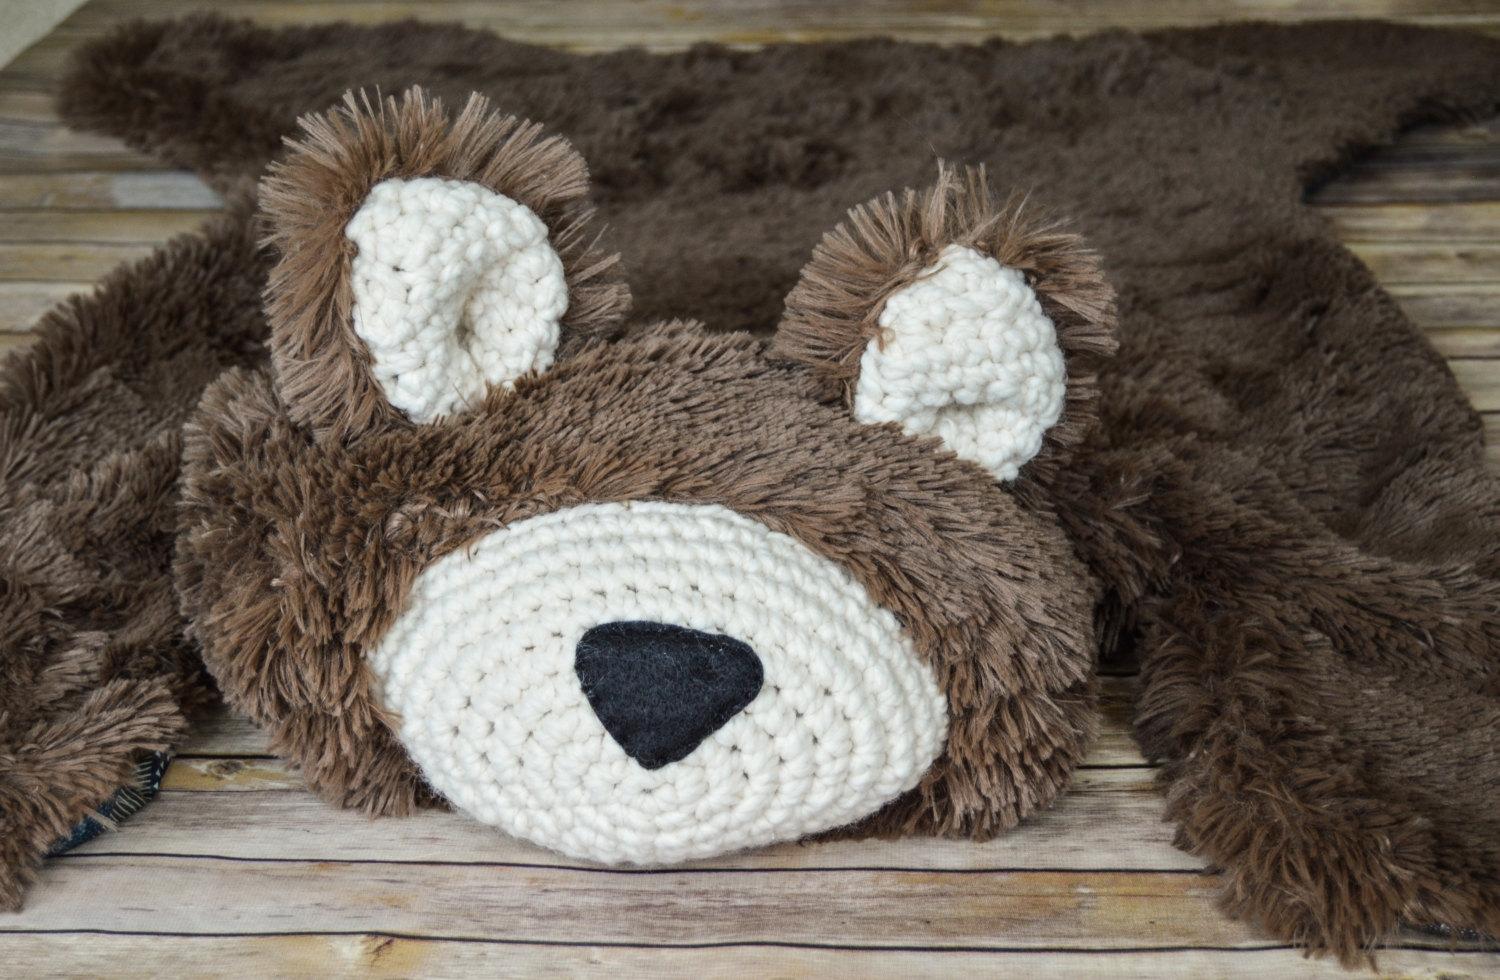 Bear Rug Faux Bear Rug Woodland Nursery Ba Room Decor Regarding Teddy Bear Rugs (Image 2 of 15)